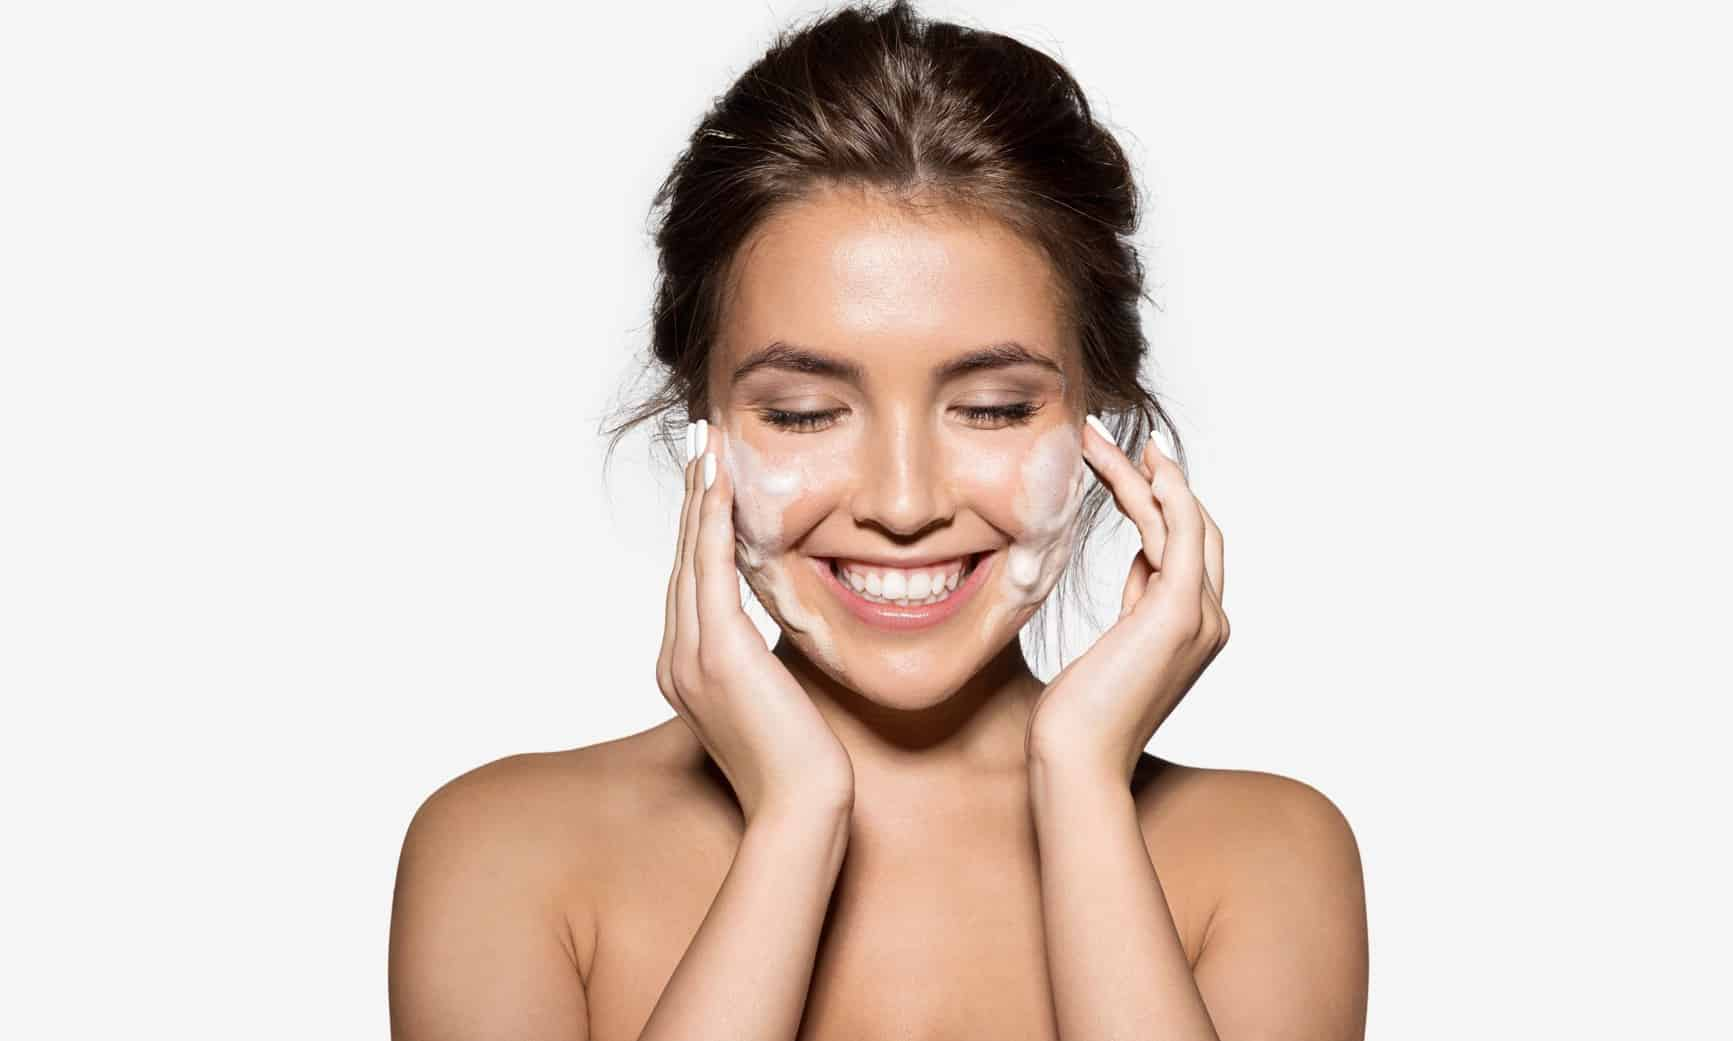 How to Hydrate Your Skin: The Top Tips to Know